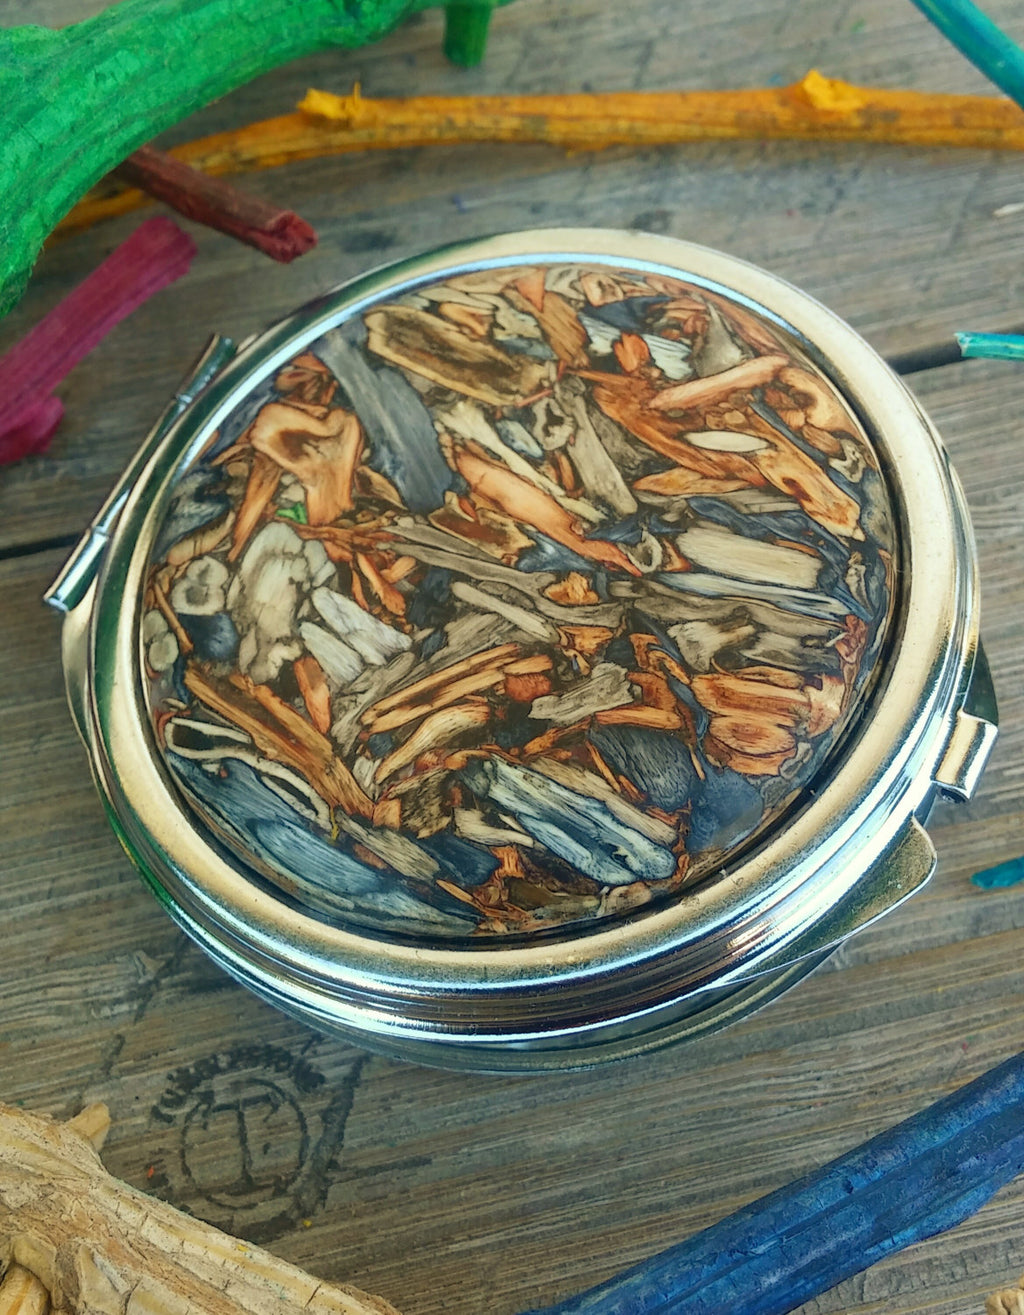 Handcrafted from Tumbleweed - Tumbleweed Mirror Compact